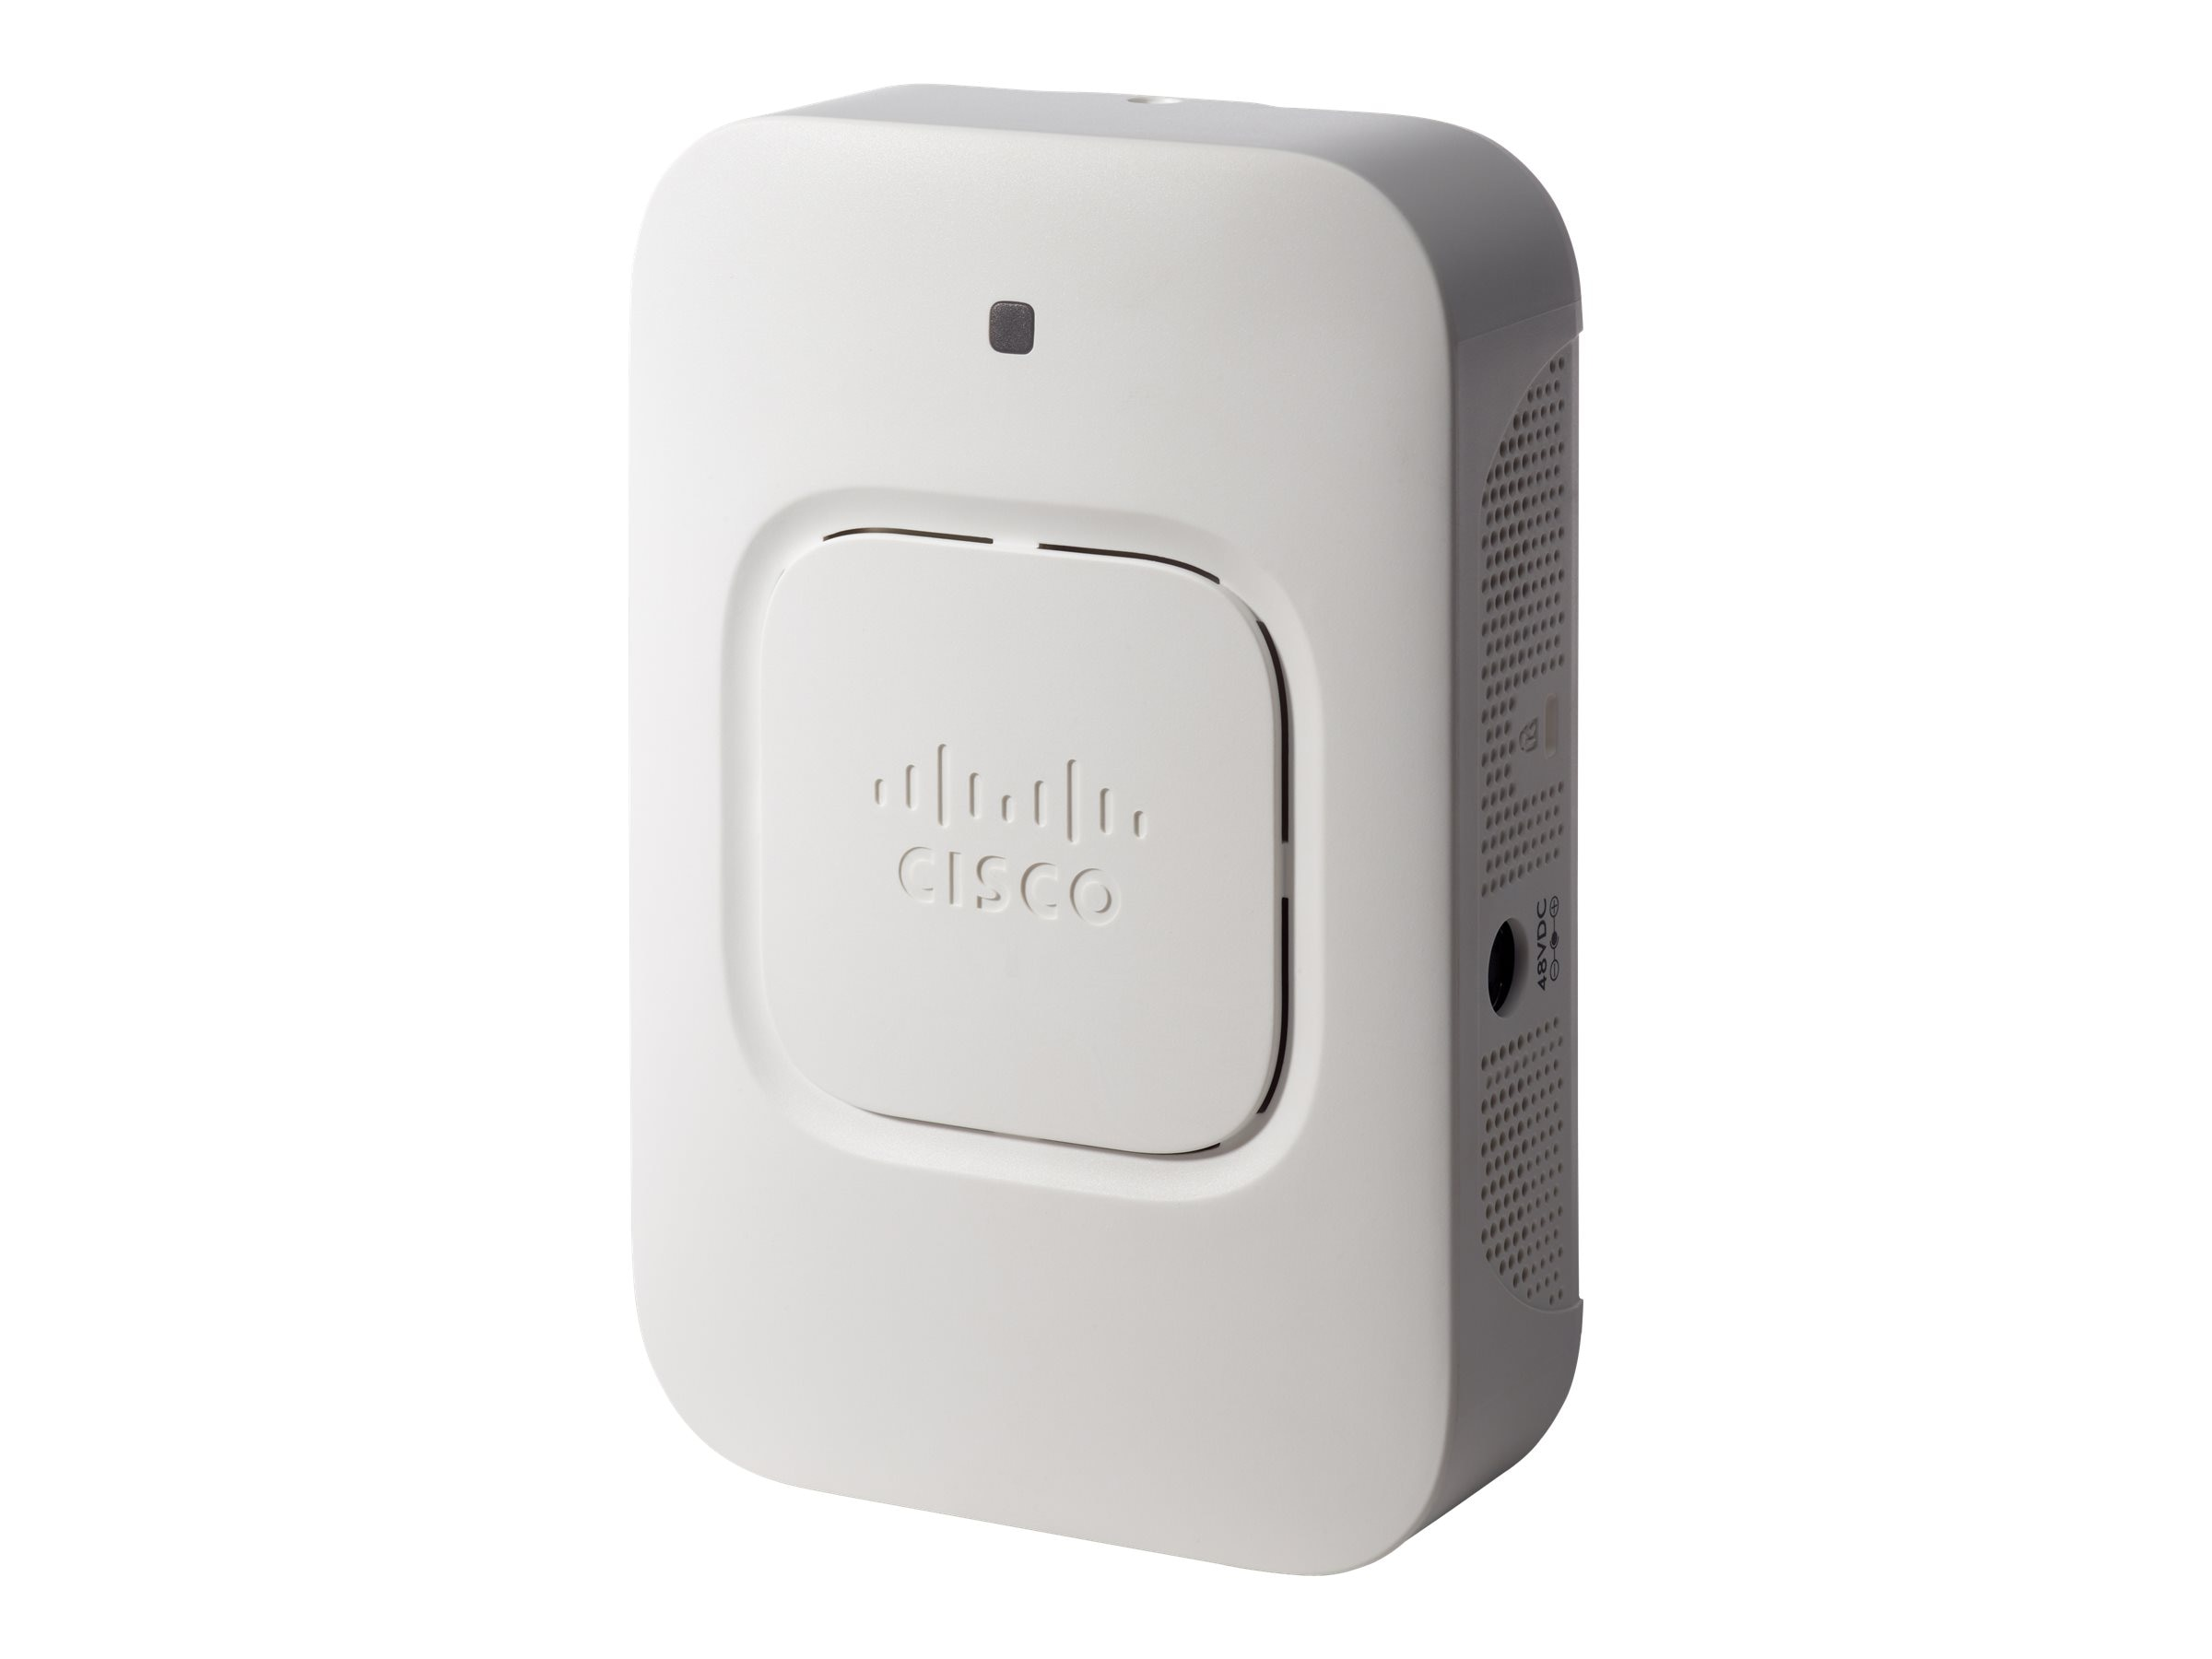 Cisco WAP361 Dual Radio Wall AP w 2x2:2SS, A Domain, WAP361-A-K9